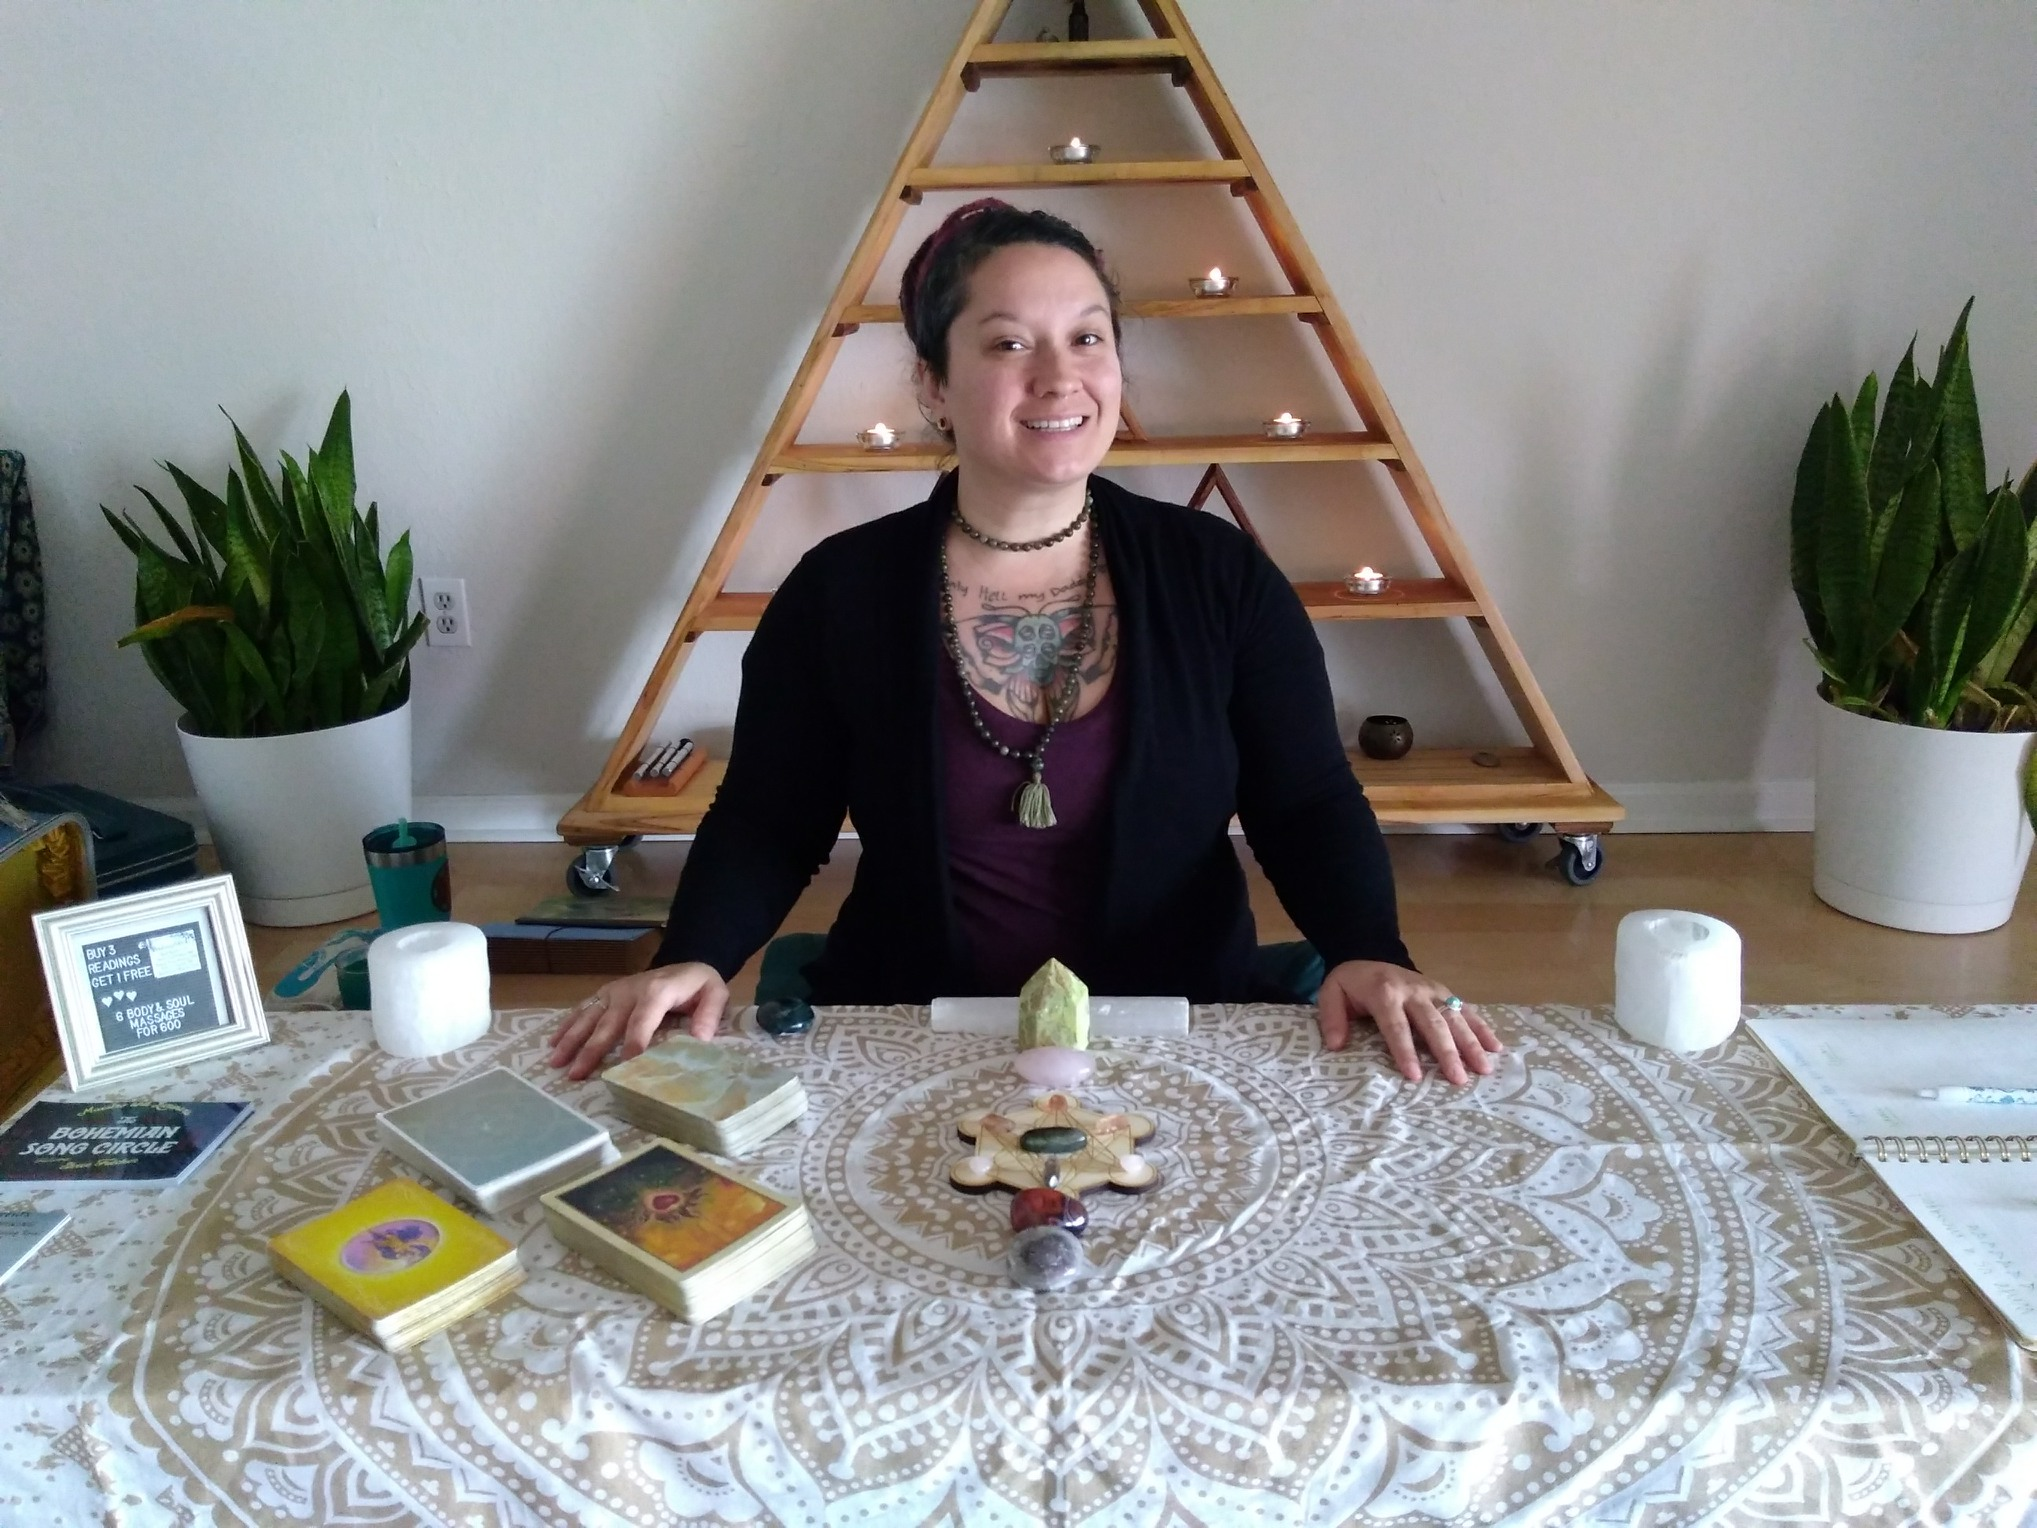 Shree Fulcher (ERYT200, Y12SR) - is a healer at heart. She brings a 200 hour ERYT certification, with the addition of over 108 hours of training in Bhakti yoga and Tantric philosophy. Extensive Yoga Nidra, Meditation, and Restorative Yoga training gives her a deeper understanding of the more subtle experiences of yoga. Shree has also received certification, through Y12SR, to teach Yoga for Recovery and relapse prevention. Having studied under powerful leaders such as Janet Stone, Nikki Myers, Tommy Rosen, Dana Walters, Jeremy Wolff, Patrick Harrington, Hareesh Wallis, and Jason Neemer, her education and understanding of yoga is both expansive and eclectic. She continues her learning journey, as she travels the world to find new and exciting ways to bring Yoga, as a way of healing, to the people and places that she loves. Shree` has been an intuitive/spiritual massage therapist for over 10 years and received her Reiki 1&2 attunements in 2015. She also offers her intuitive gifts through readings, from a variety of Oracle Cards, and facilitates personalized Star Seed Awakenings, from The Human Design.